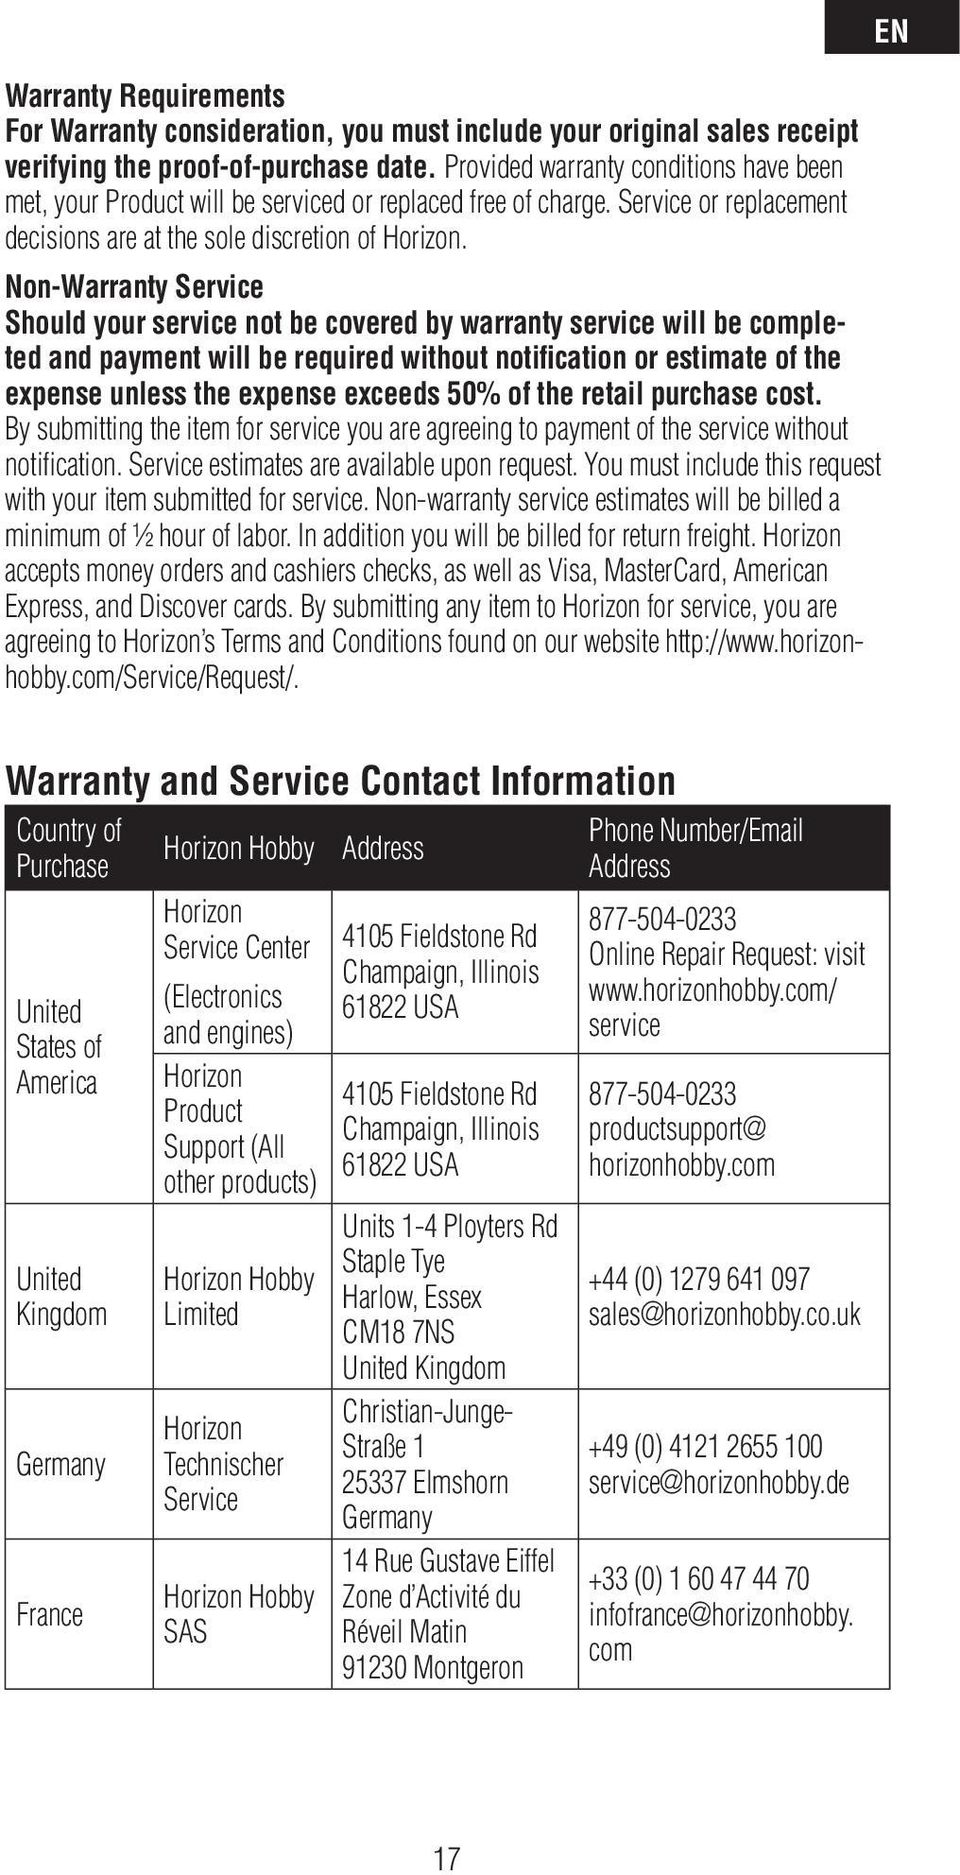 USA Warranty Requirements For Warranty consideration, you must include your original sales receipt verifying the proof-of-purchase date.